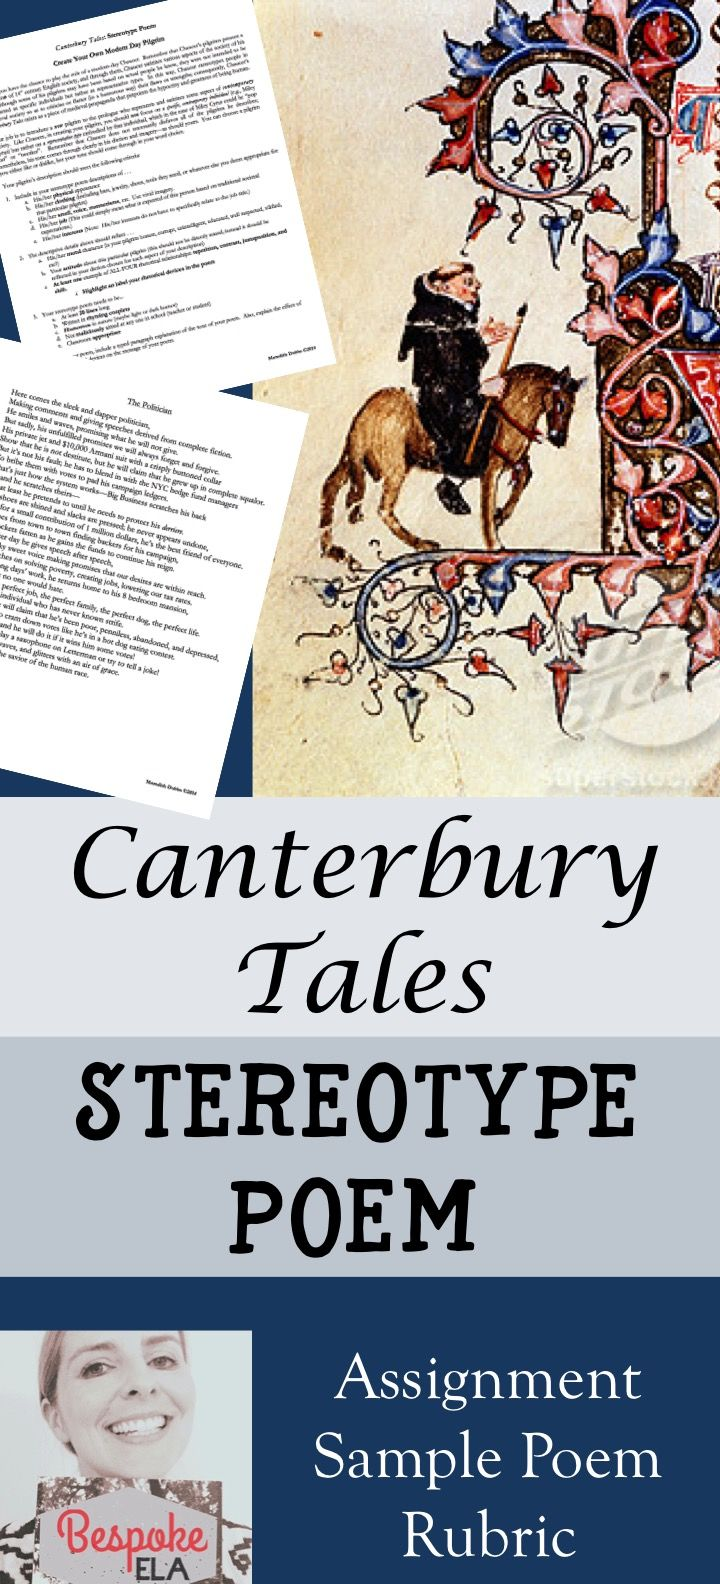 canturbury essay The canterbury tales - corruption and greed in the canterbury tales corruption in the canturbury tales by gefforey chaucer essay - the canterbury tales.